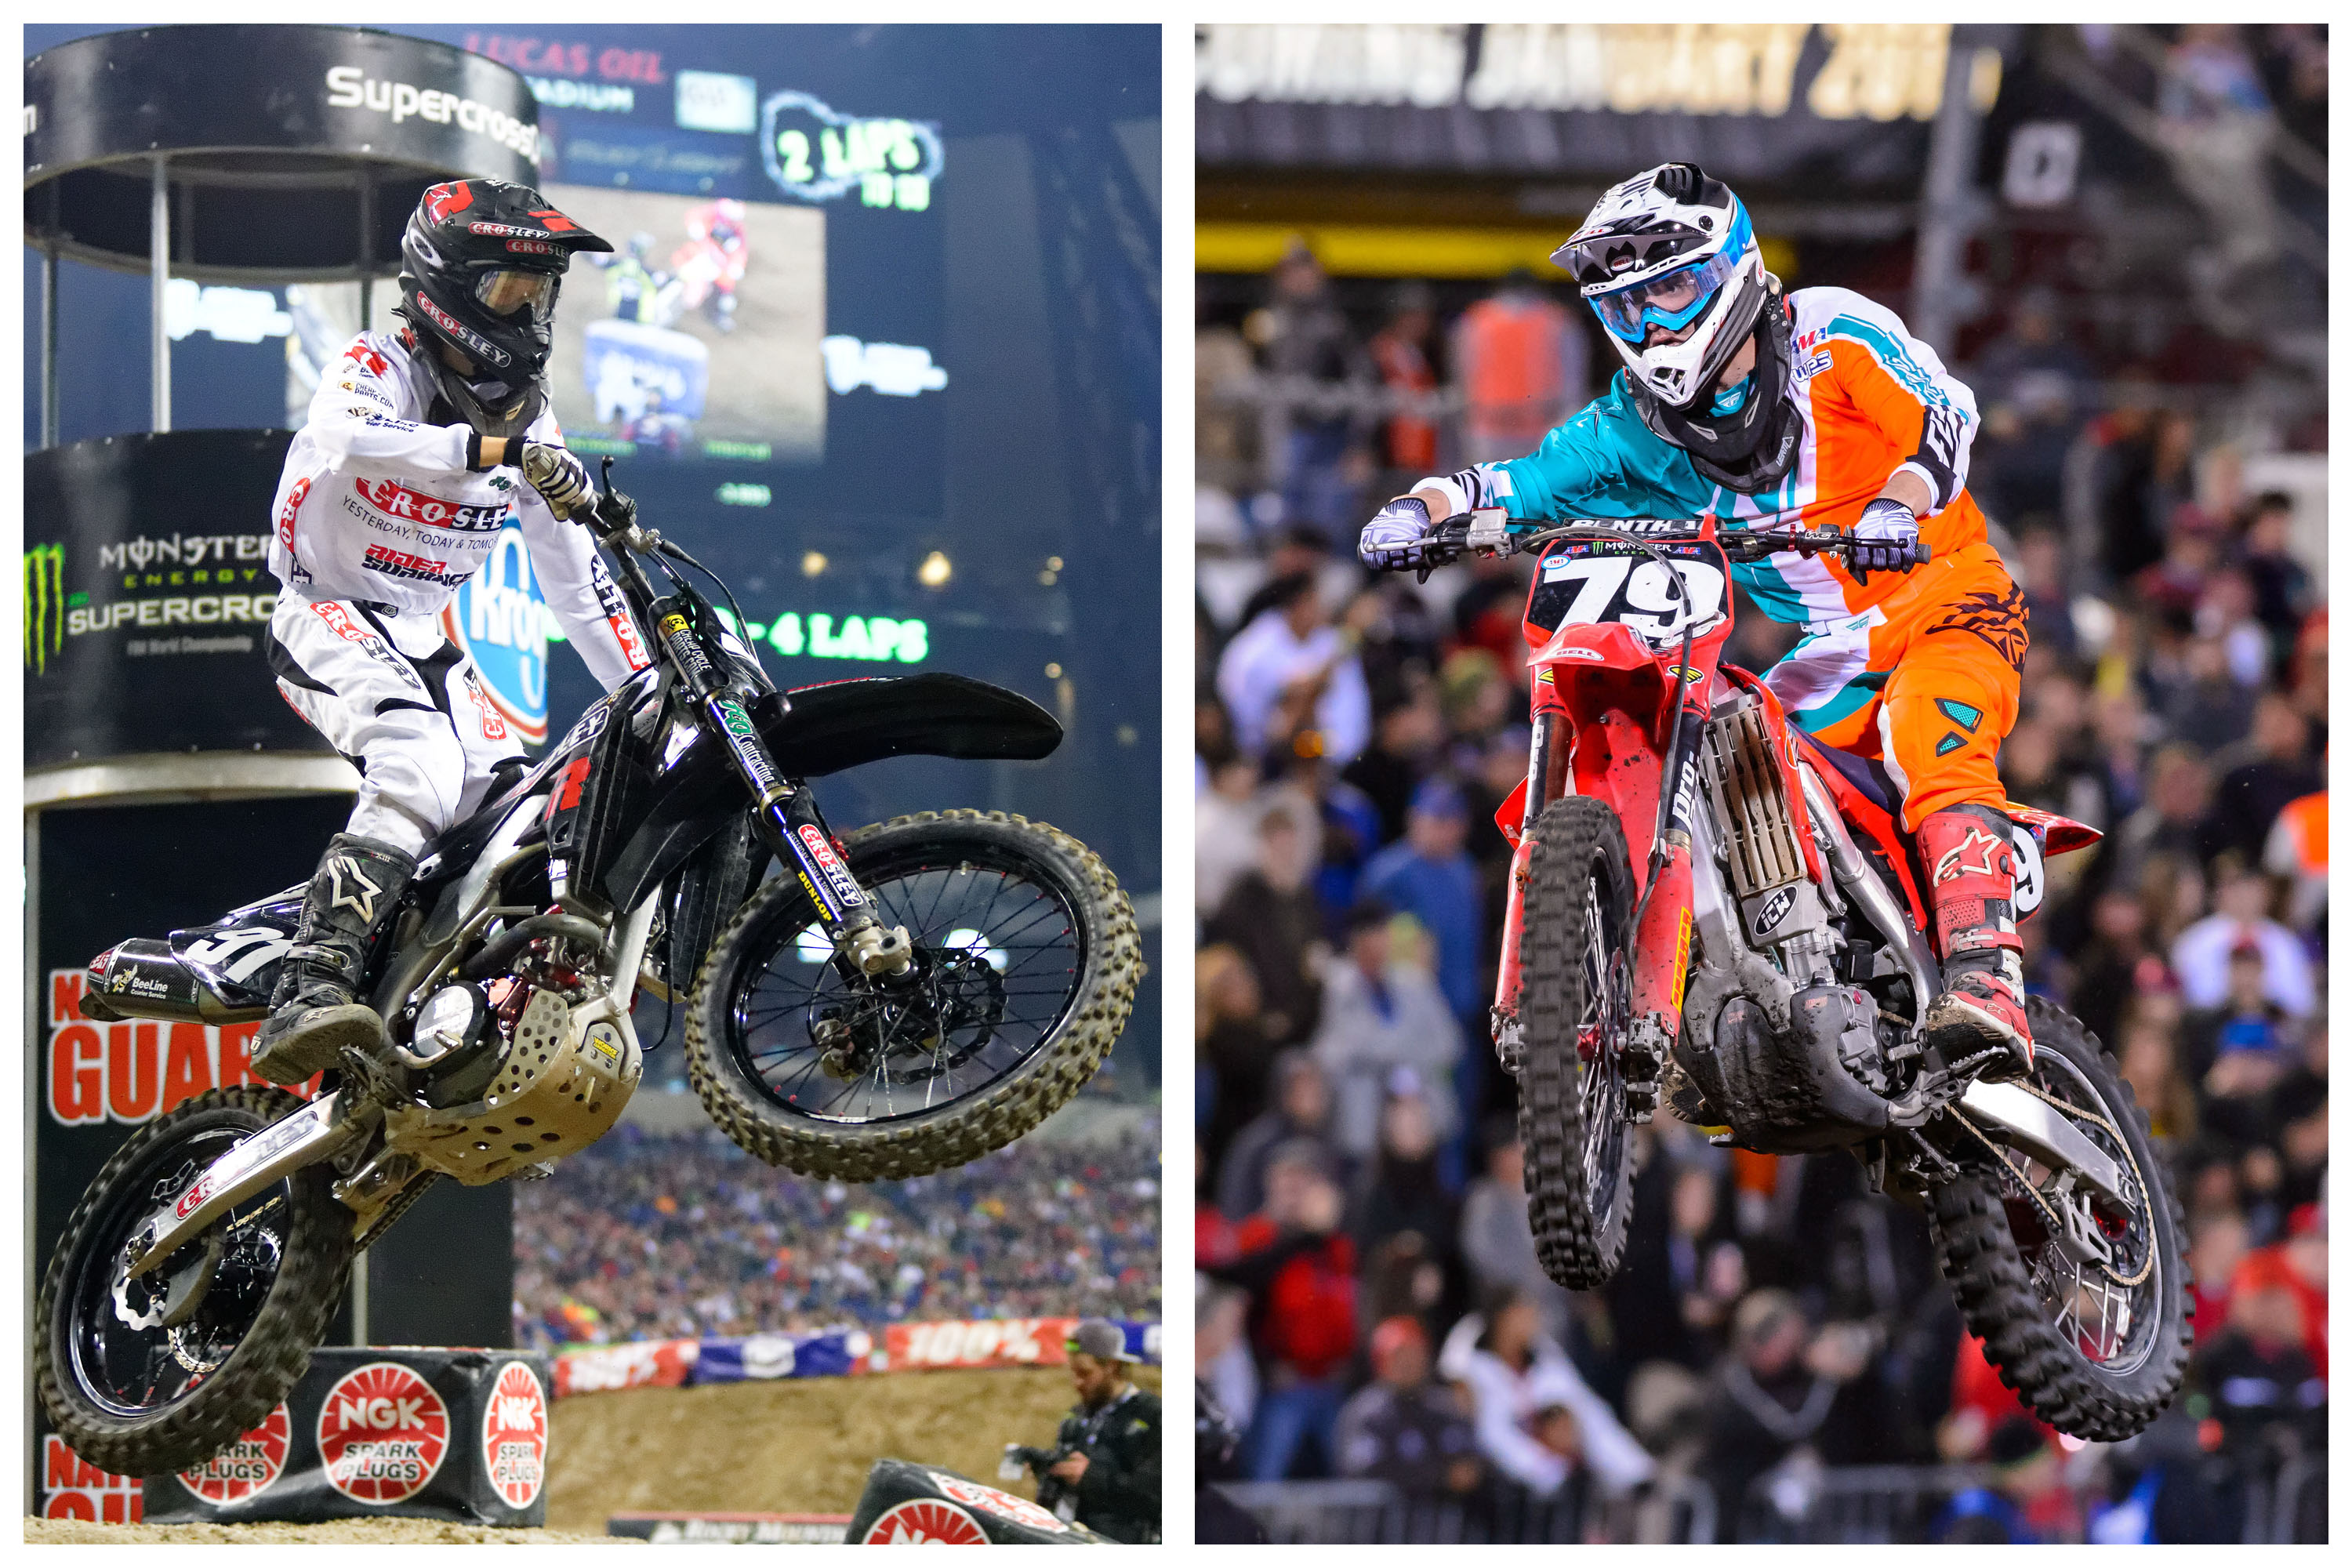 Privateer Profile: Baumert and Zimmer